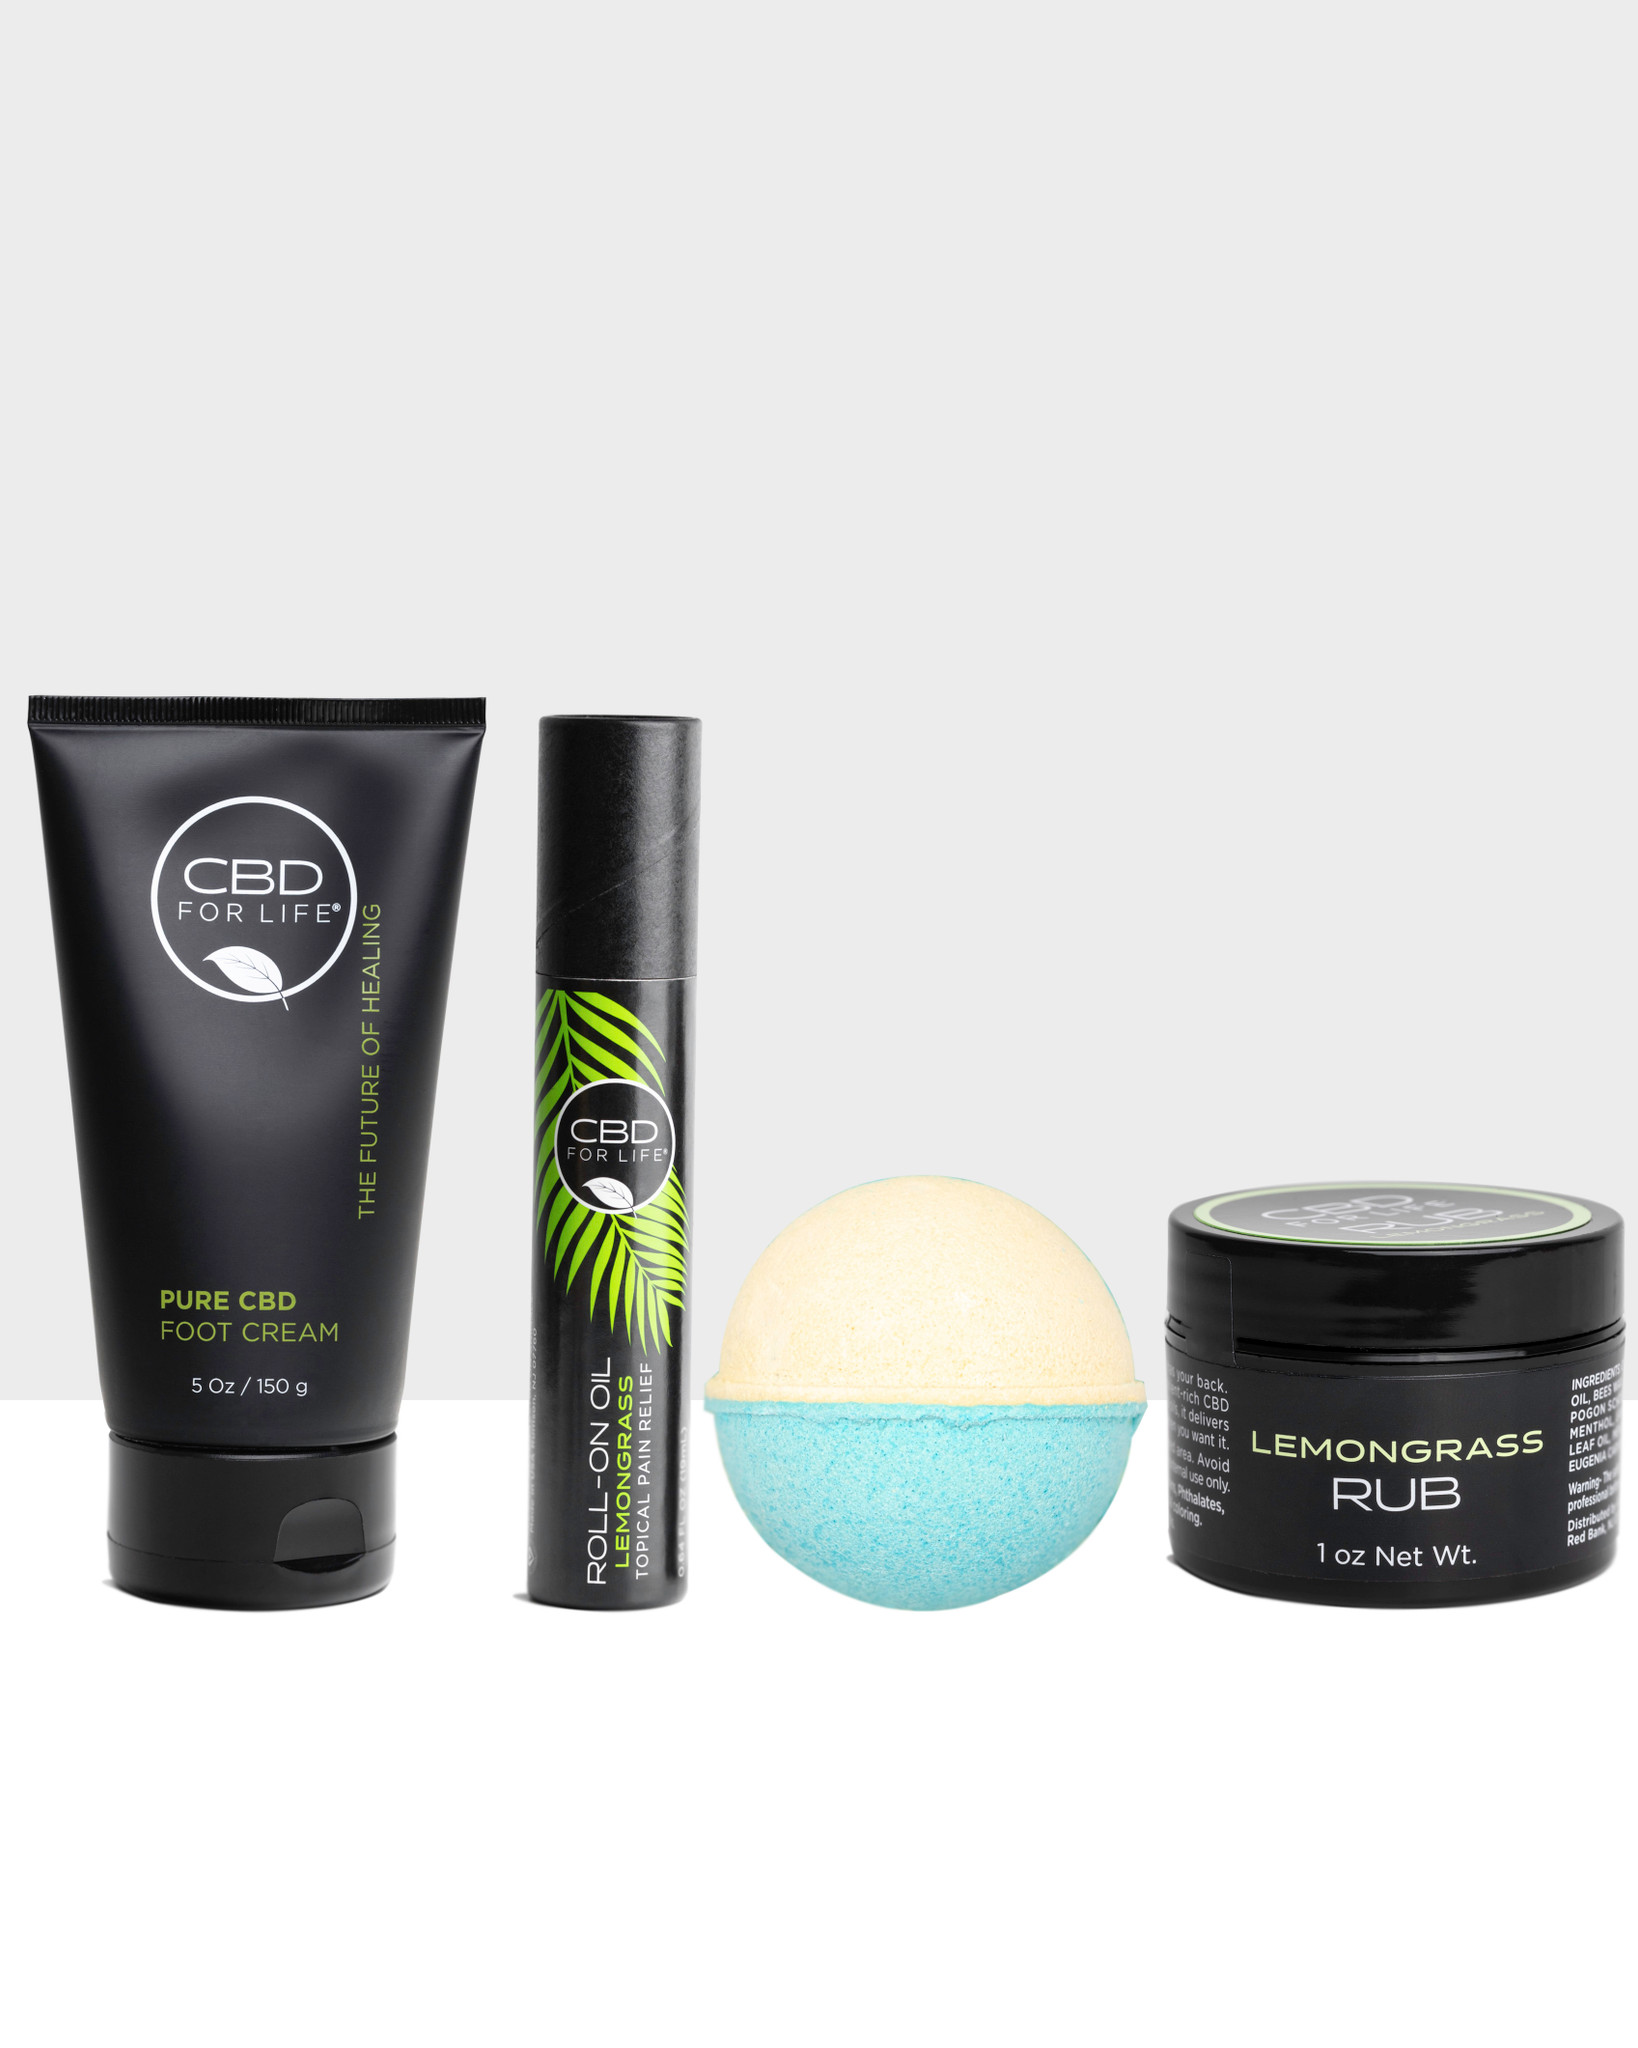 Give them All The Feels with our feel-good CBD lemongrass gift set. Includes four fan favorites: CBD Lemongrass Rub, CBD Lemongrass Roll-On, CBD Lemongrass Kiwi Bath Bomb, CBD Foot Cream.